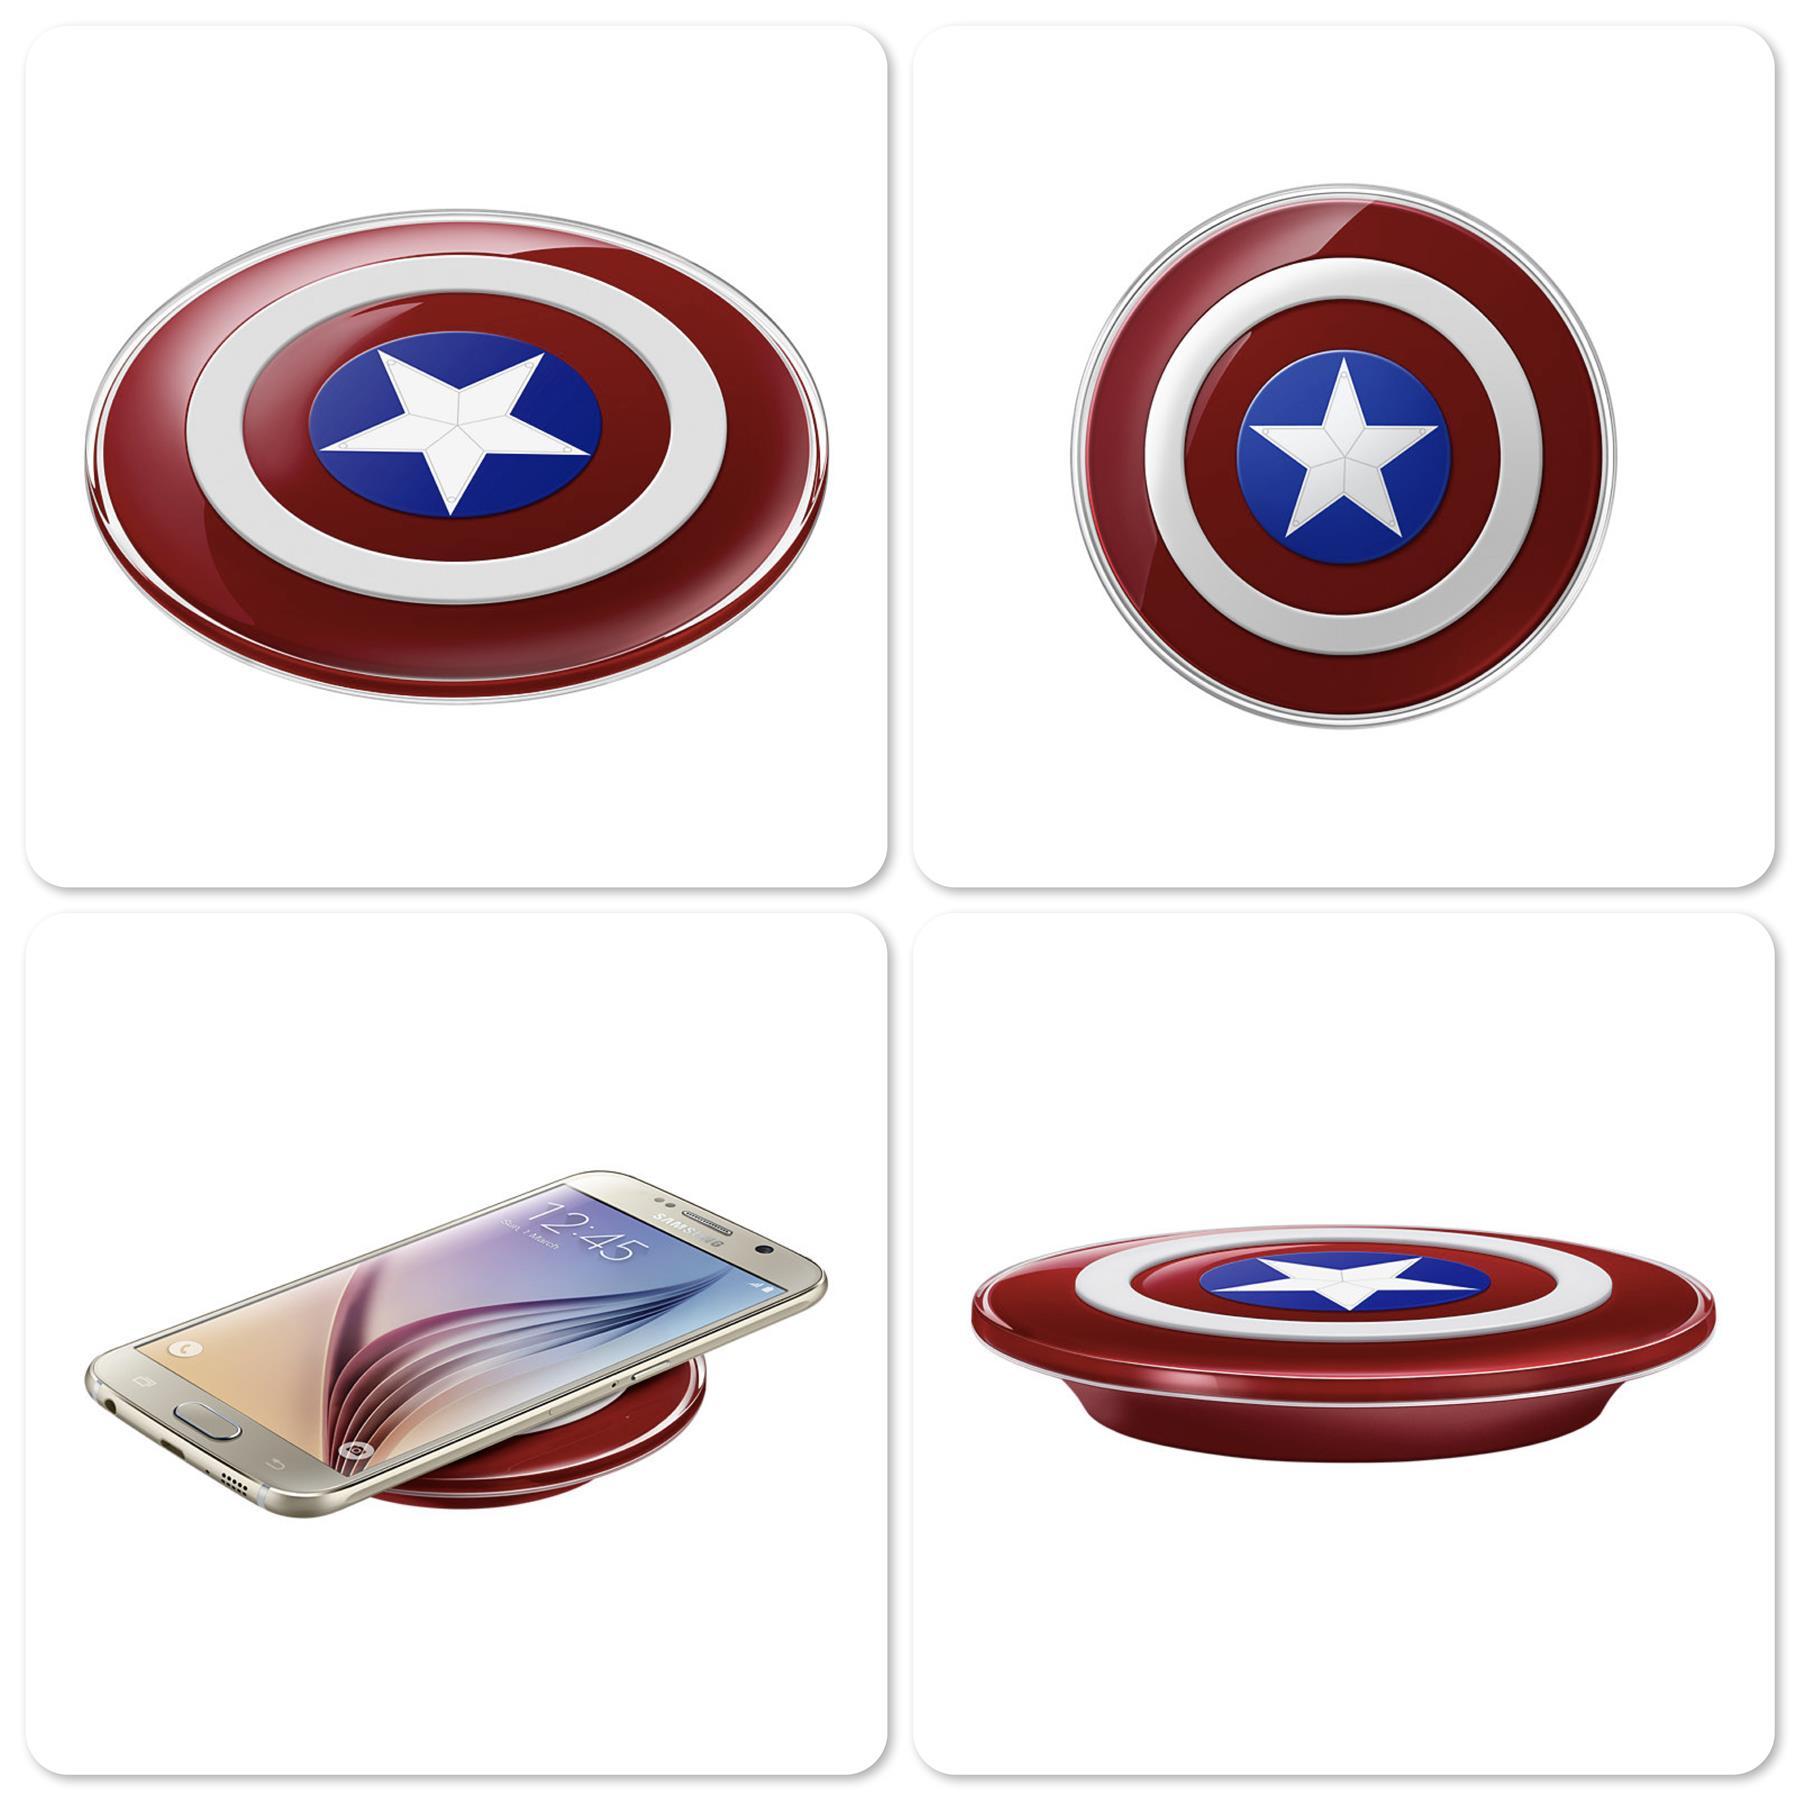 Bdotcom = Original Samsung Wireless Charger Avengers Edition